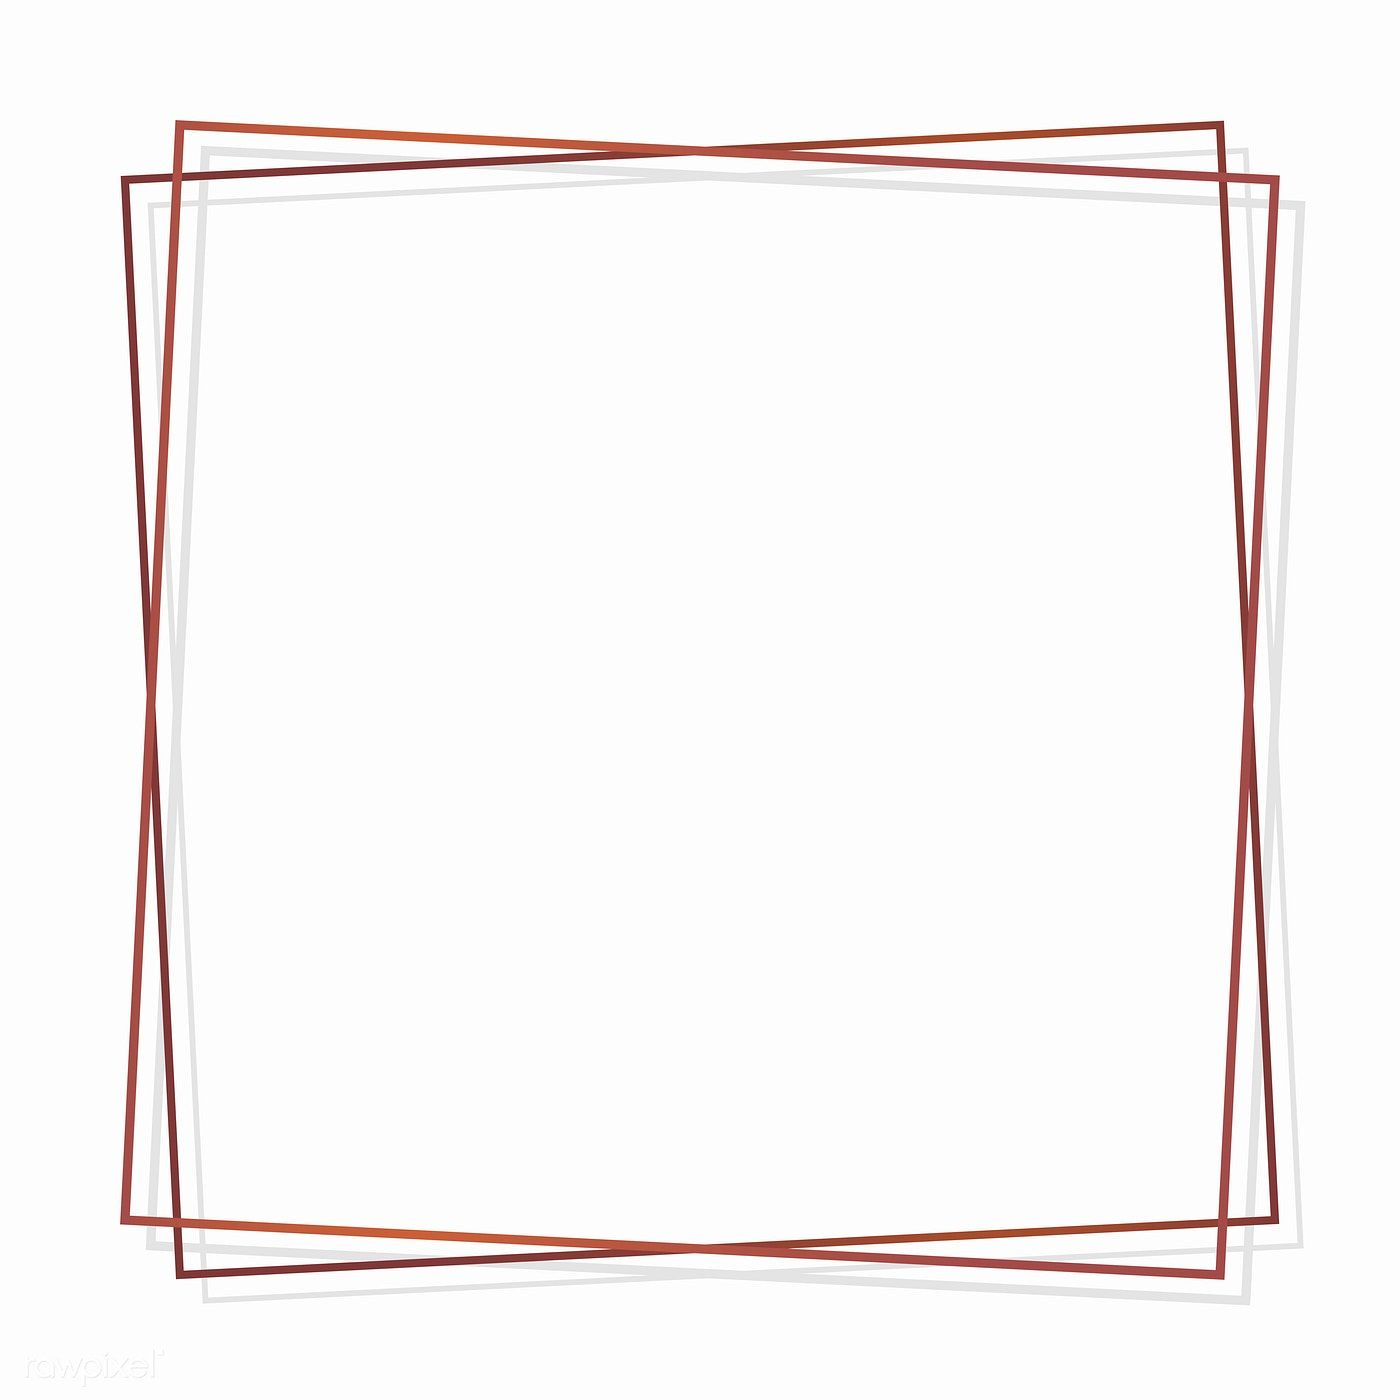 Square Bronze Frame On White Background Vector Free Image By Rawpixel Com Sasi In 2020 Poster Background Design Instagram Frame Template Vector Free